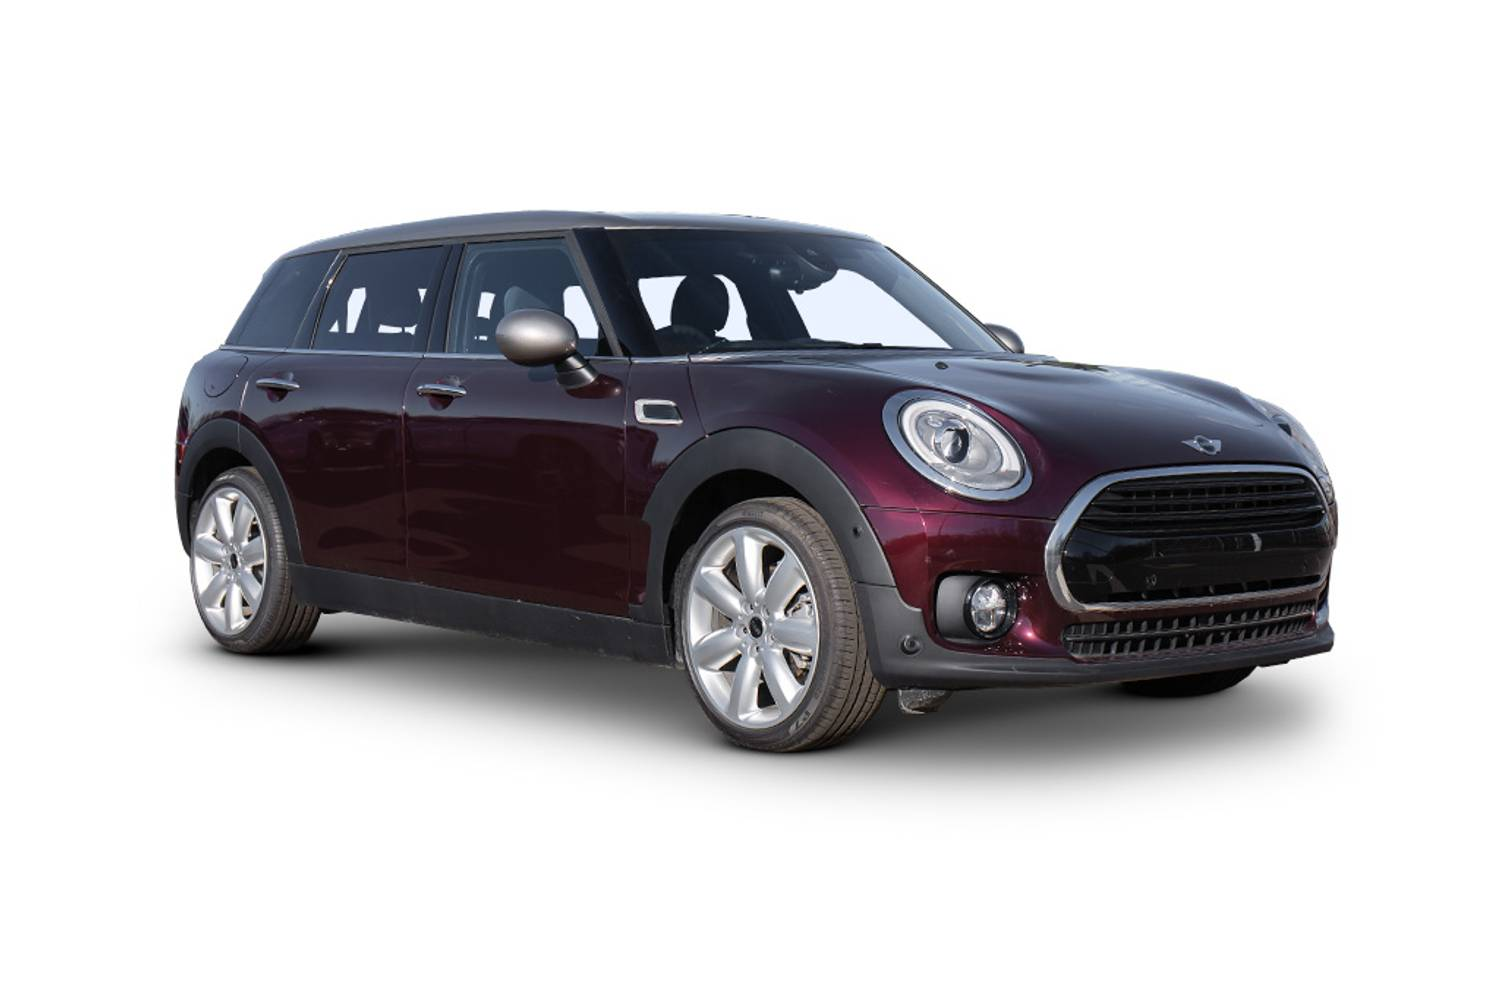 new mini clubman estate 1 5 cooper 6 door auto chili pack 2015 for sale. Black Bedroom Furniture Sets. Home Design Ideas